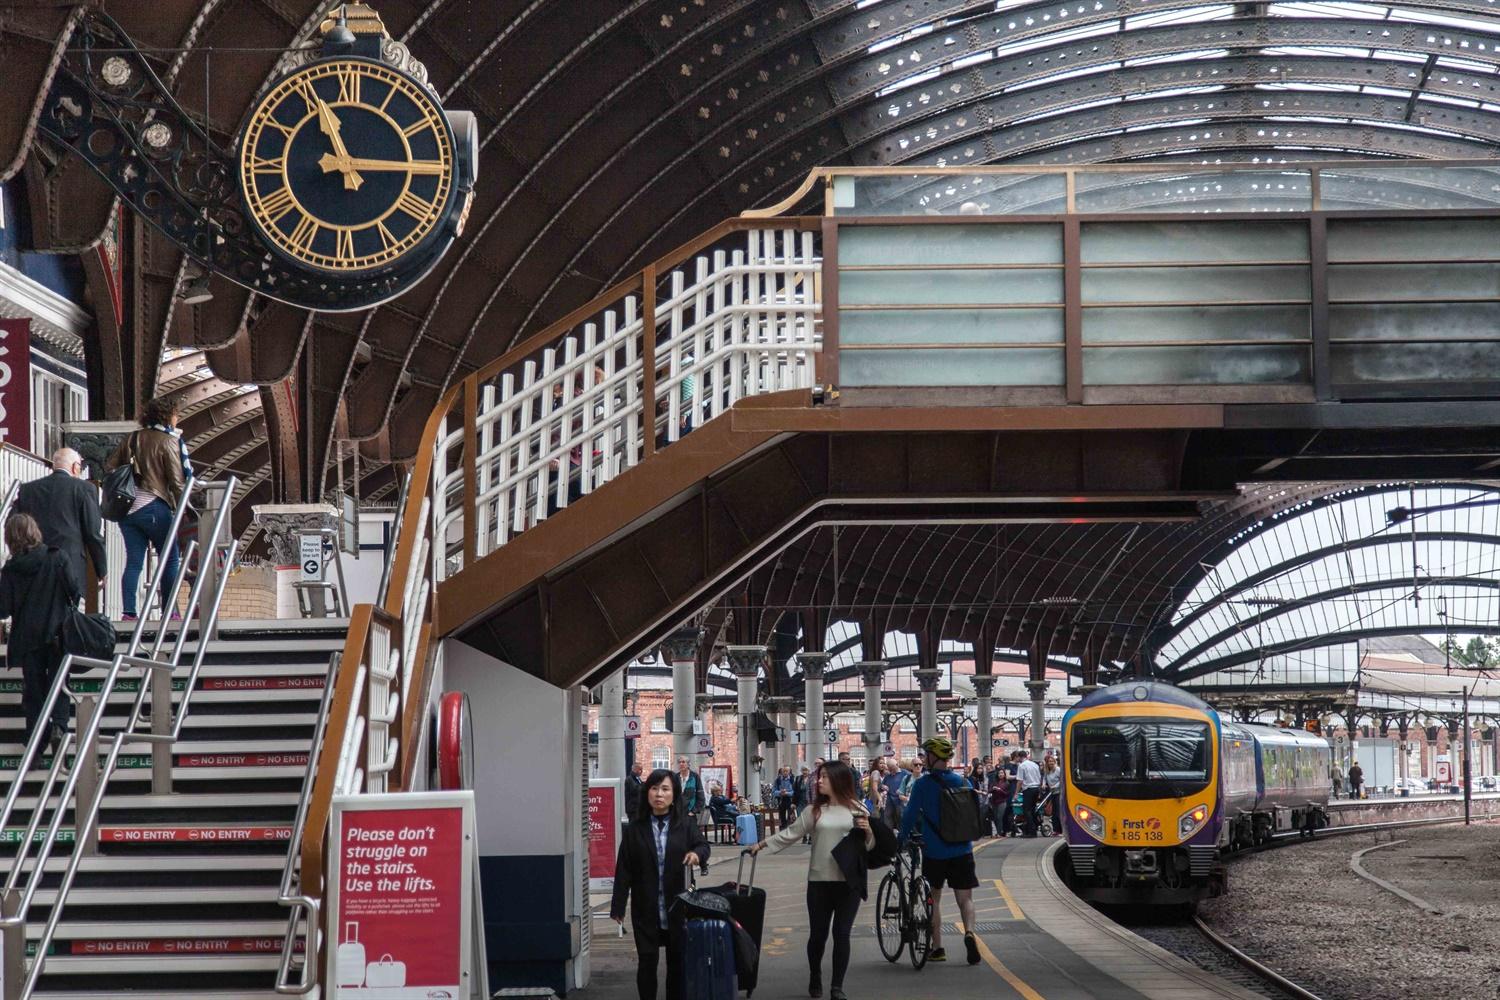 York invites public's views on £100m station revamp